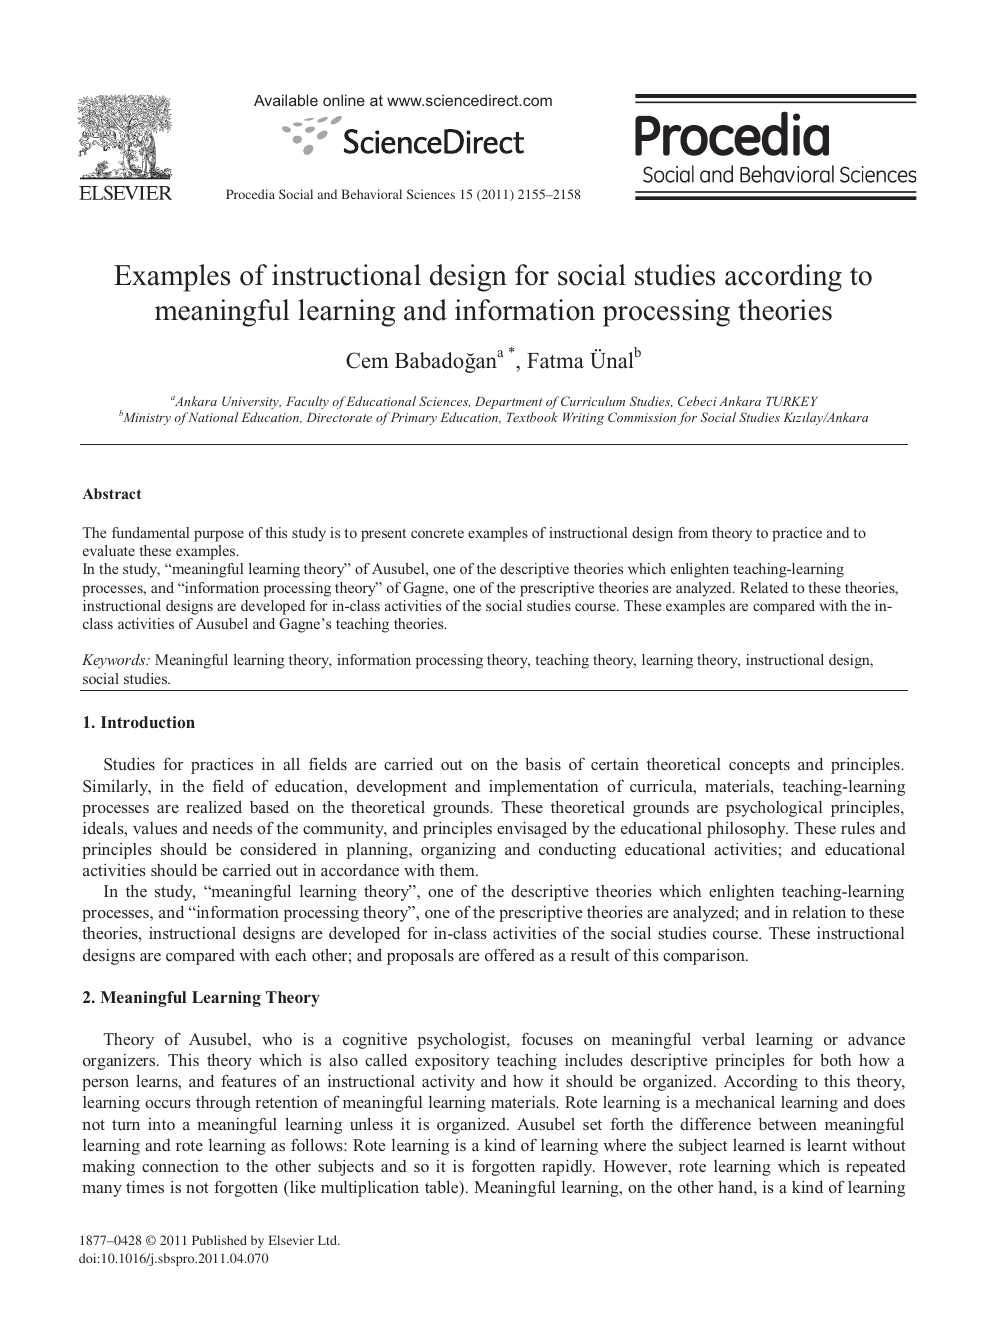 Examples Of Instructional Design For Social Studies According To Meaningful Learning And Information Processing Theories Topic Of Research Paper In Educational Sciences Download Scholarly Article Pdf And Read For Free On